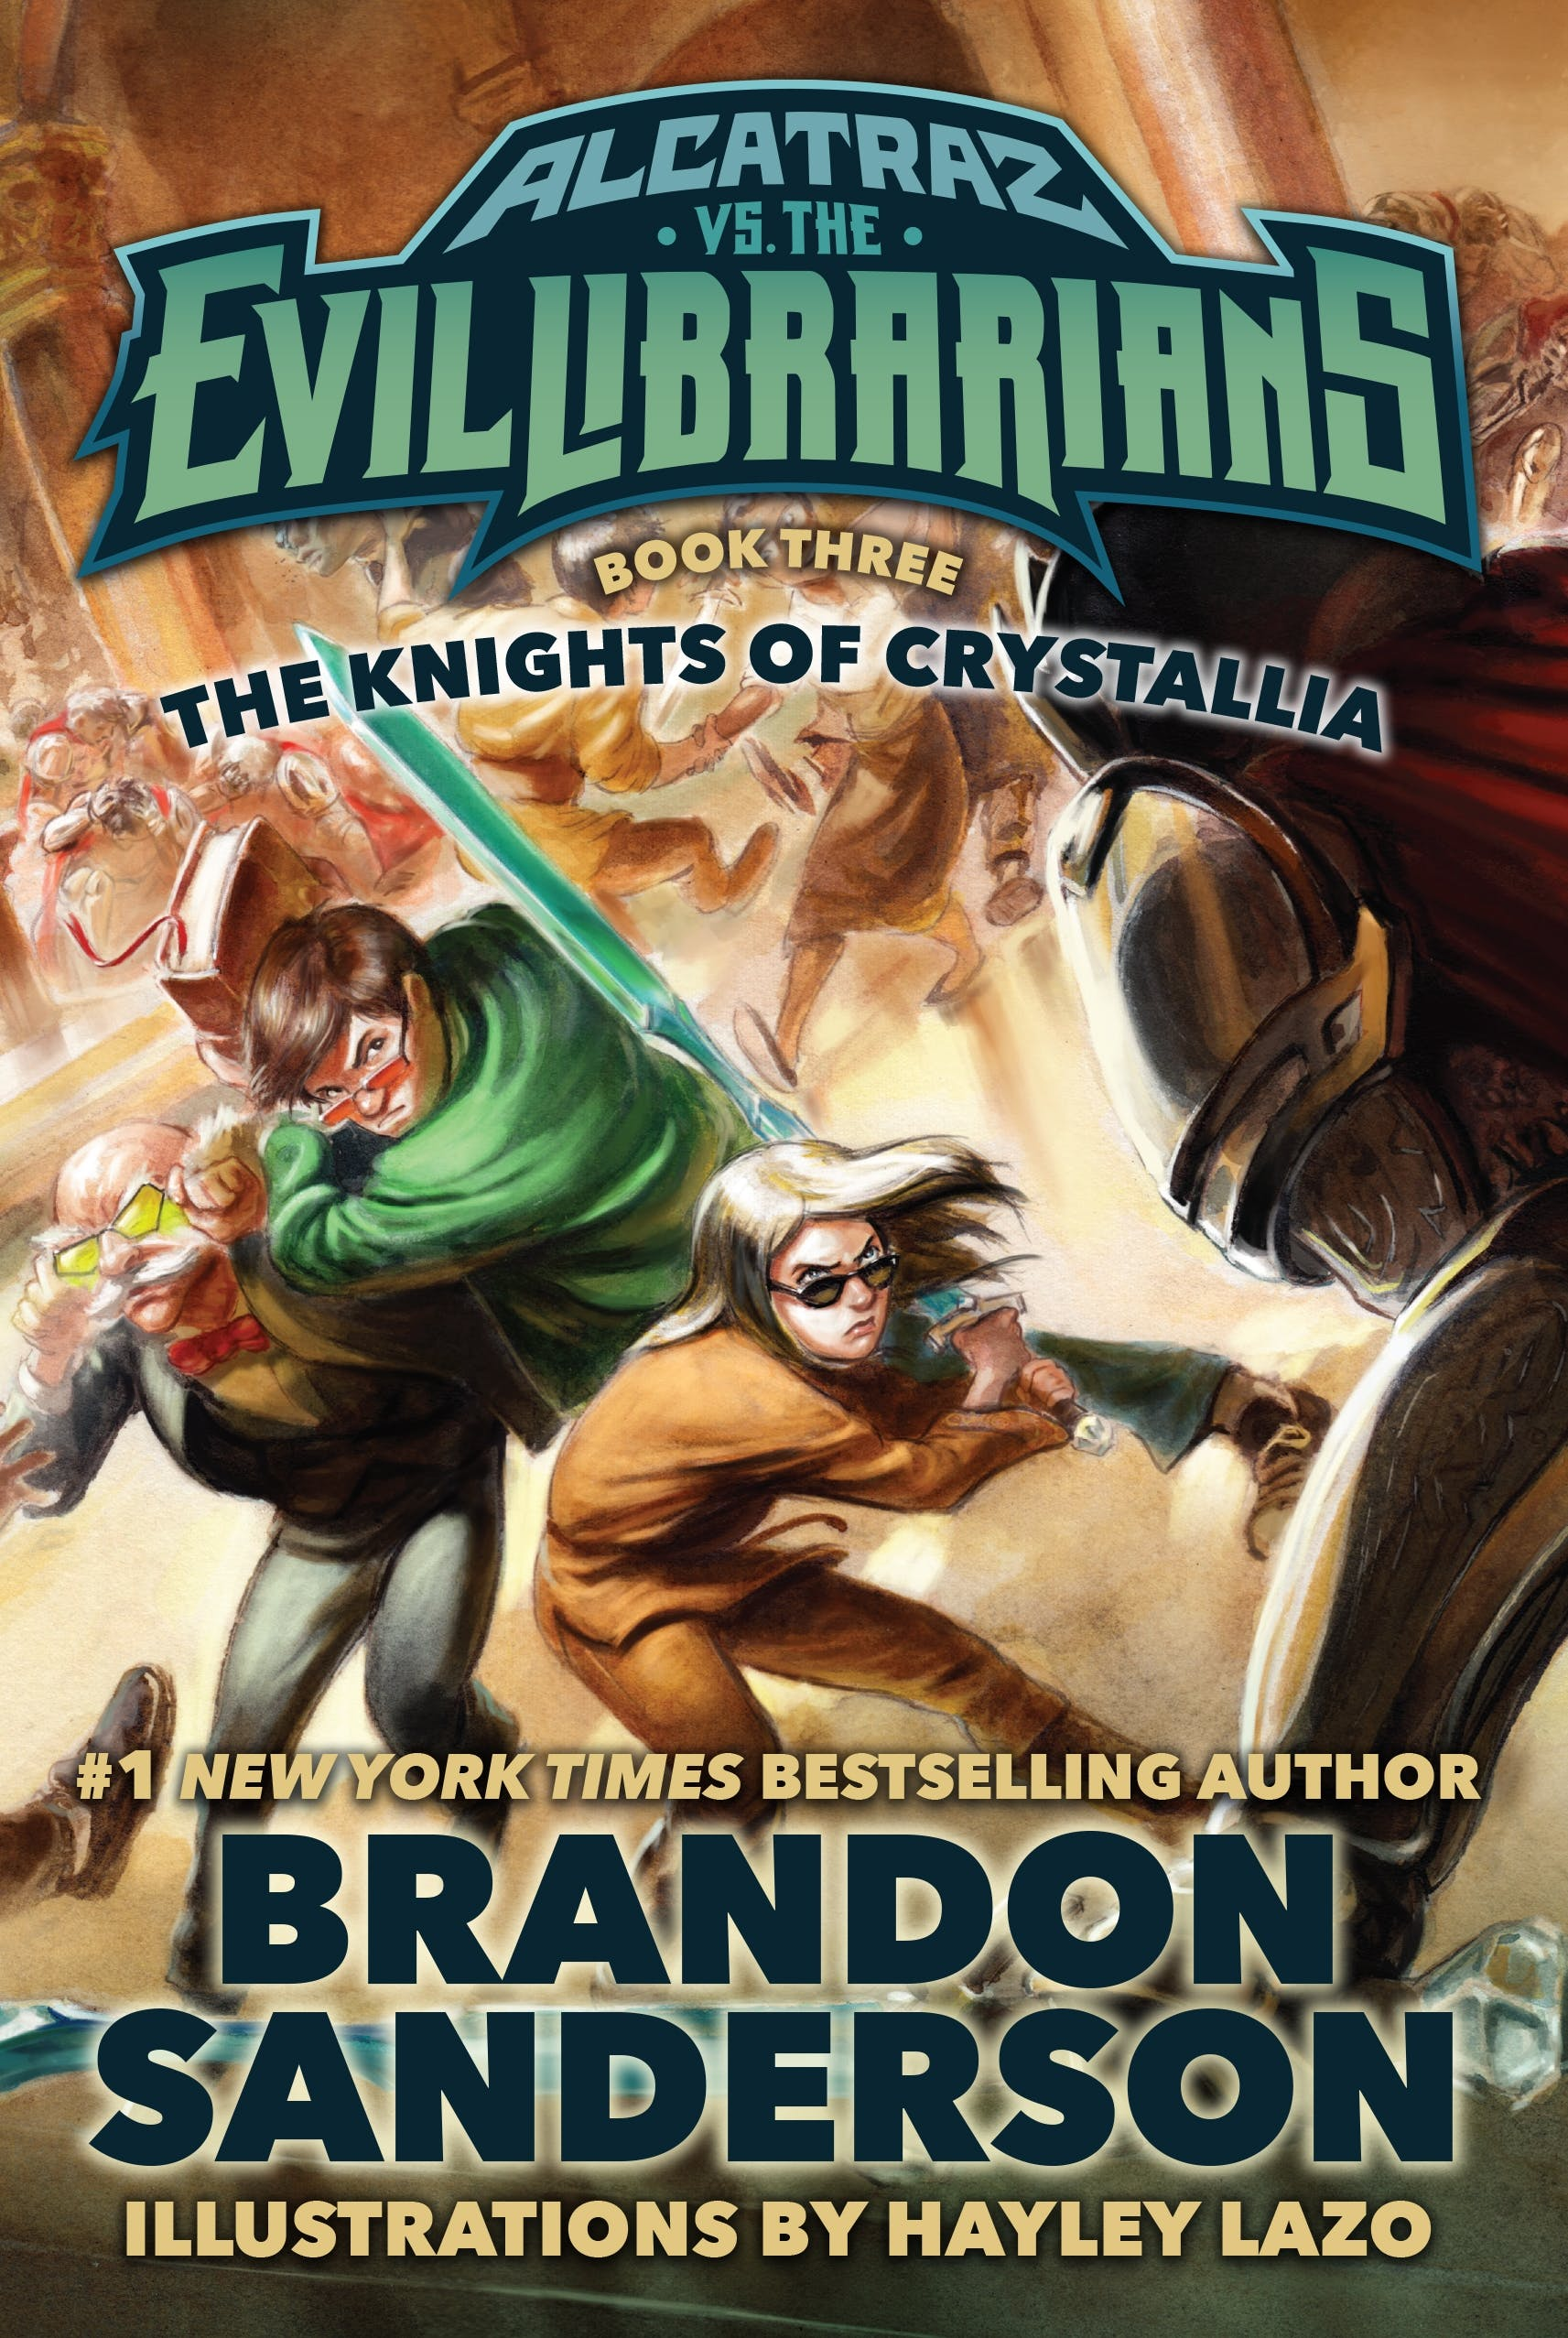 Image of The Knights of Crystallia